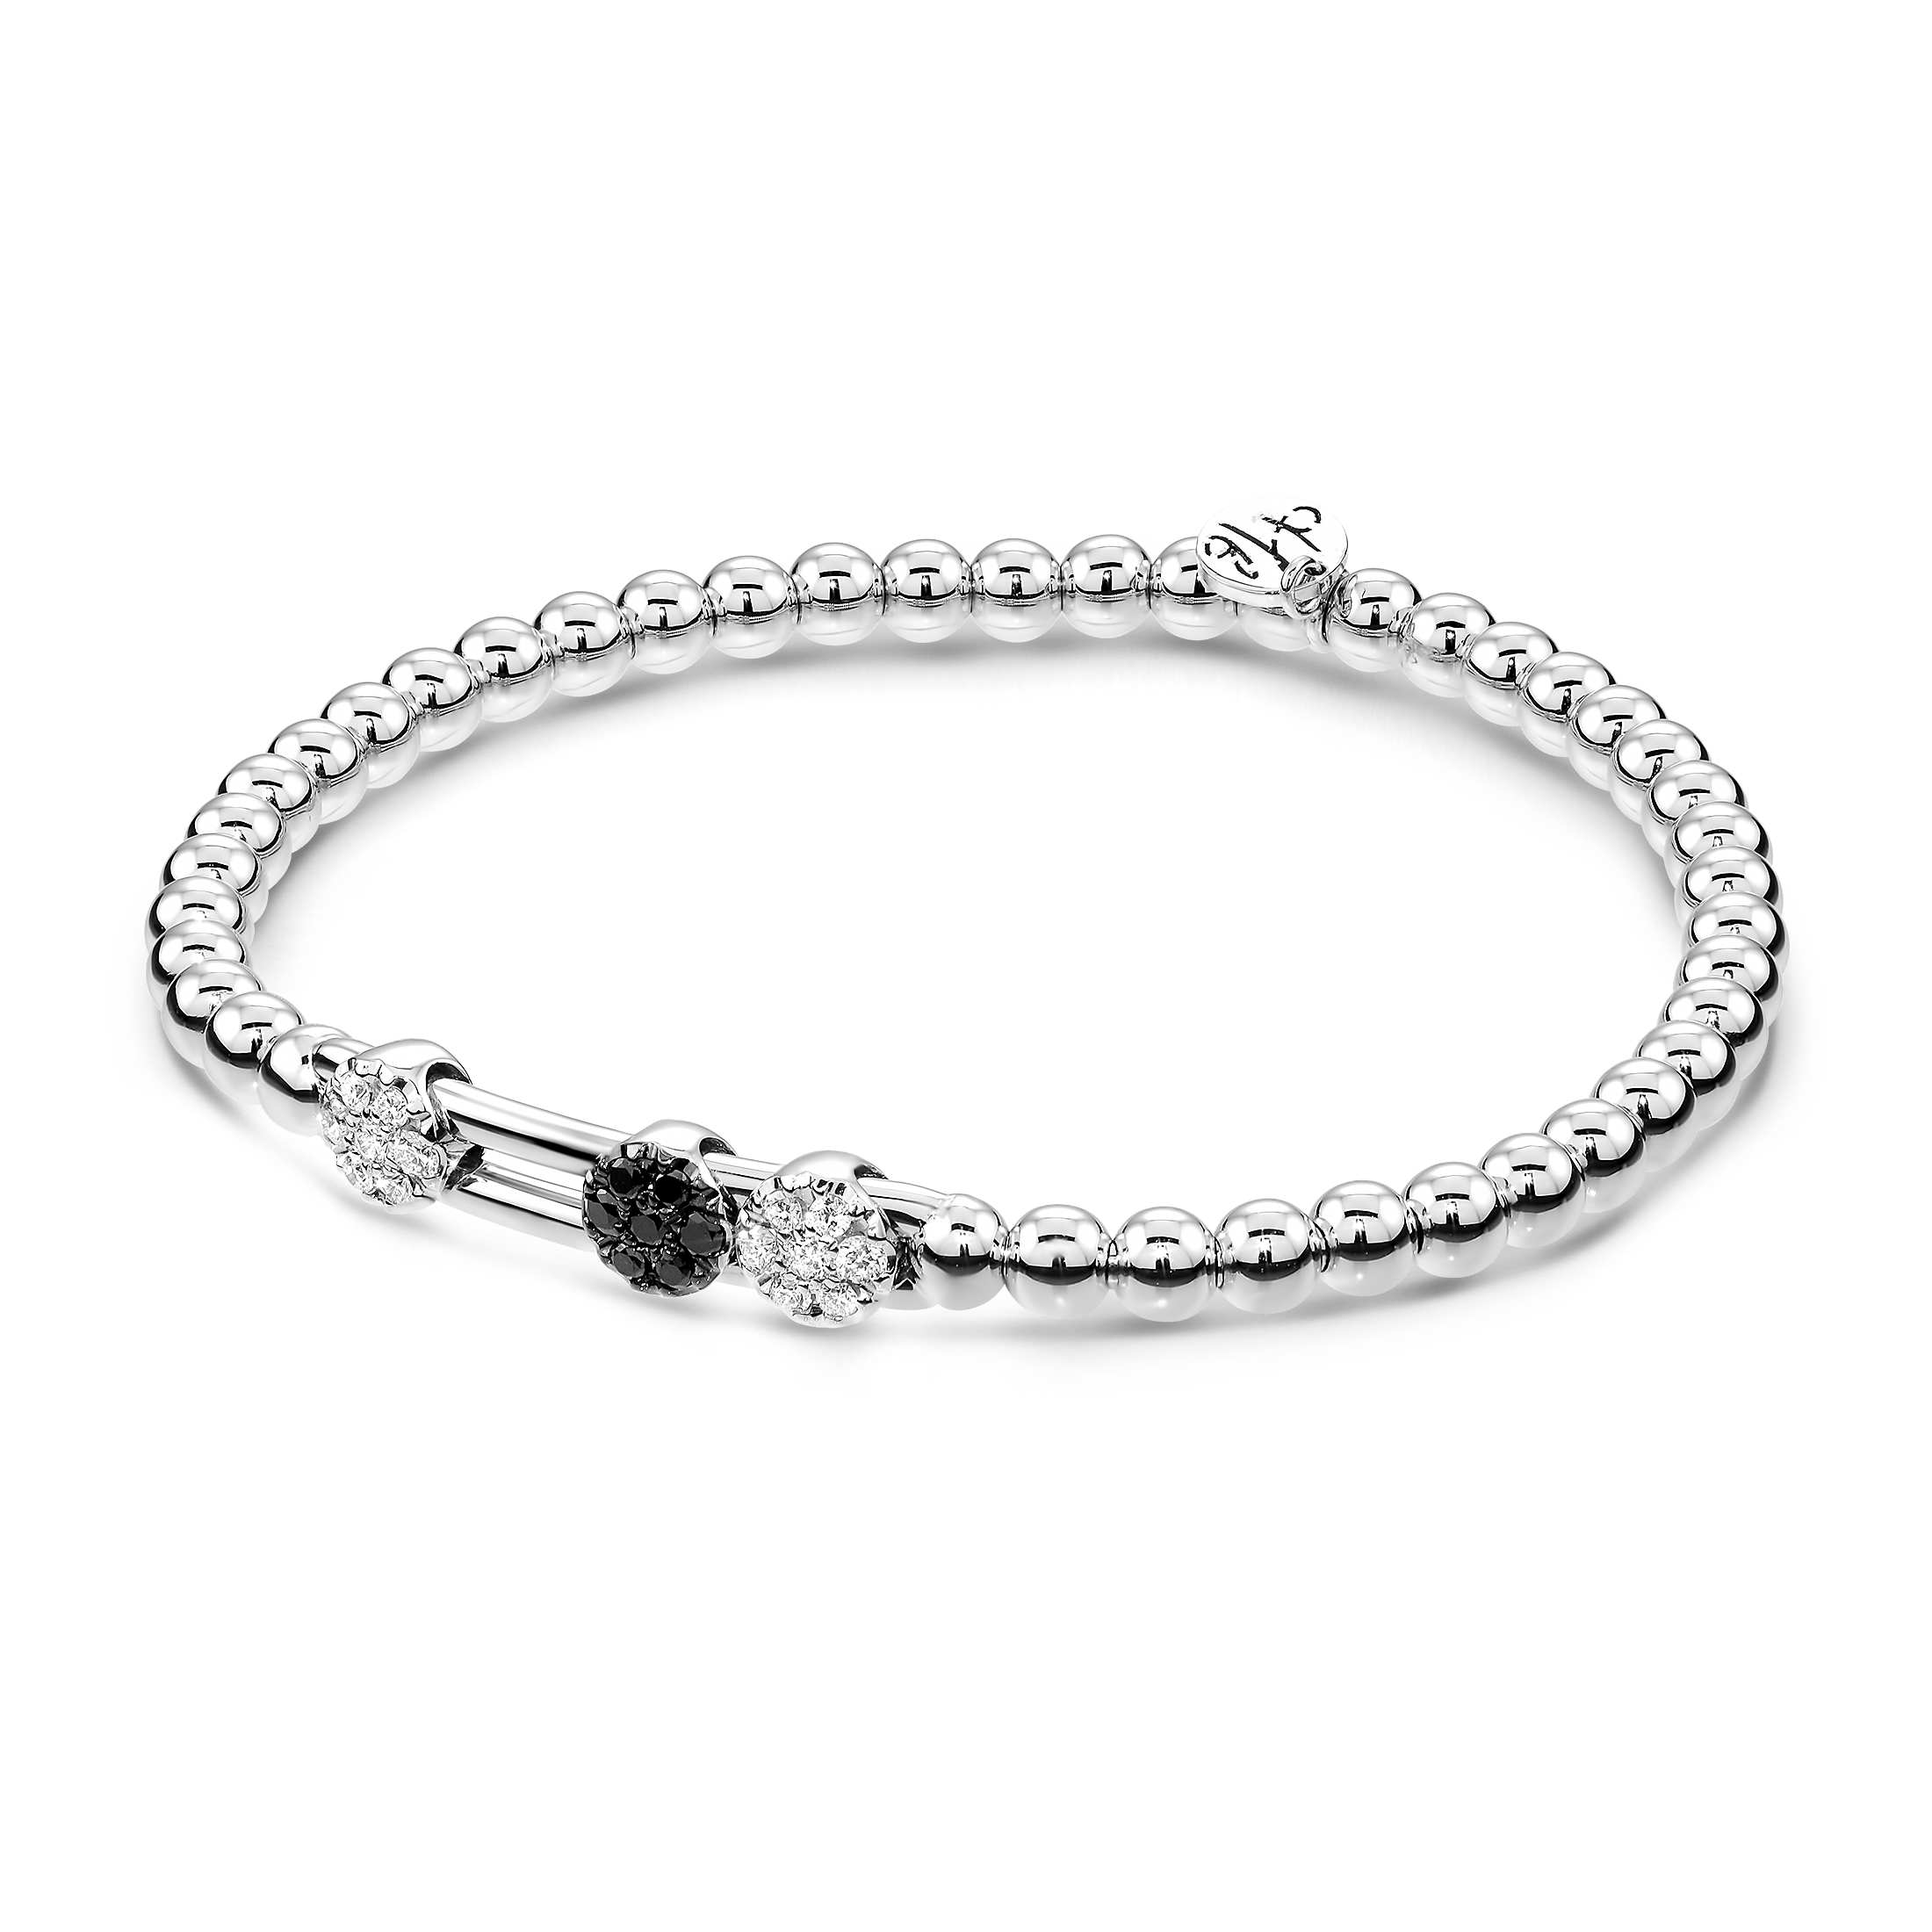 c jewelry bracele carats collections bracelet gbr regent on tagged set diamond modern tennis main jewelers bezel